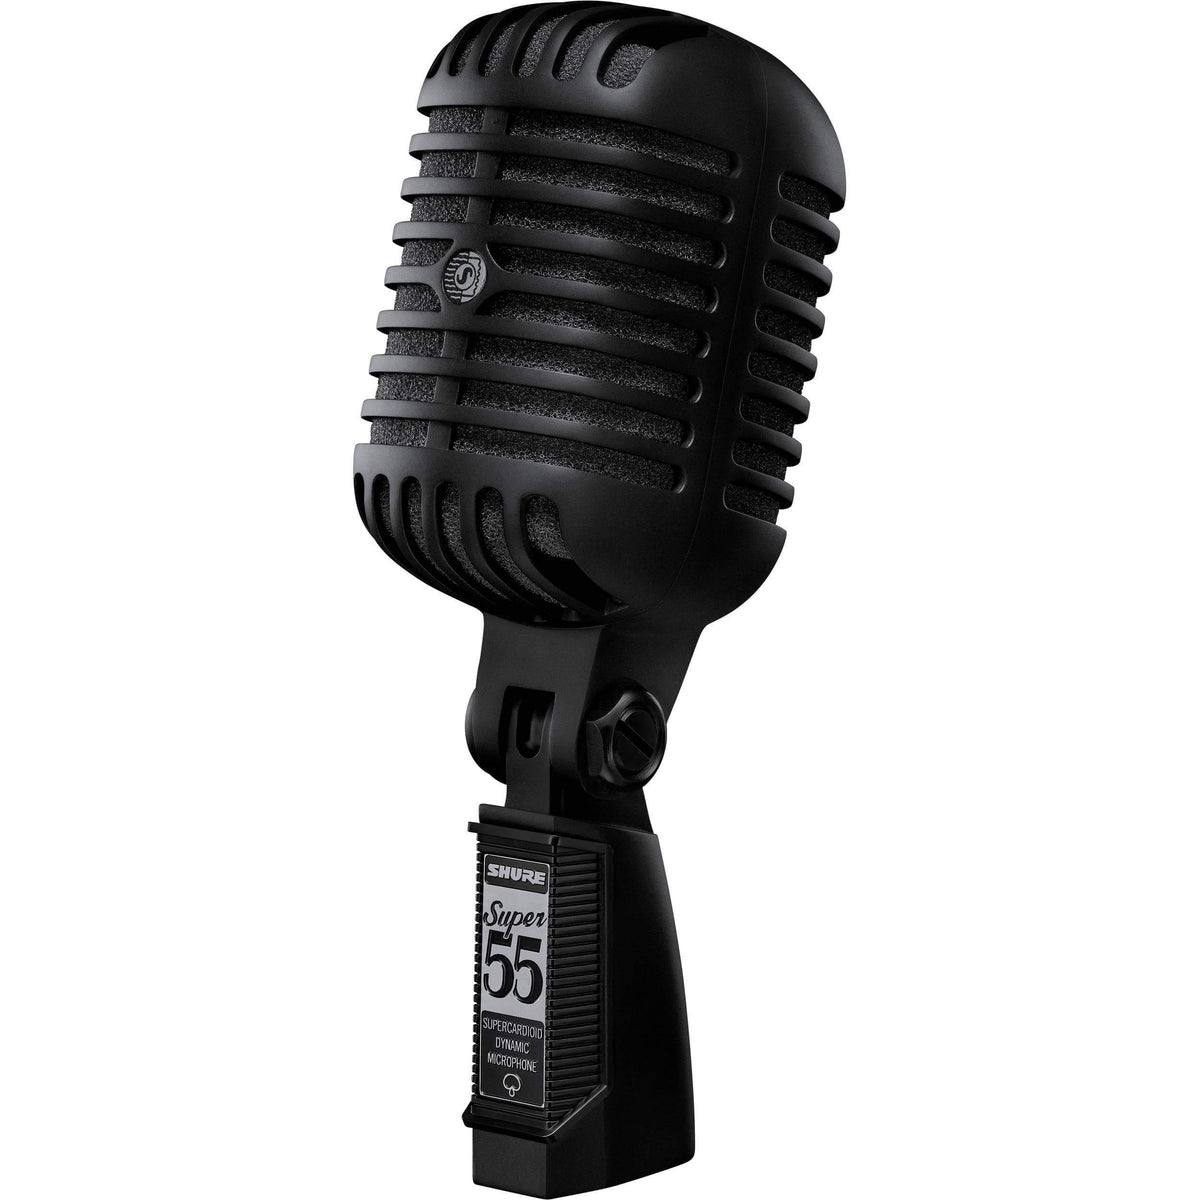 Shure Dynamic Microphone Shure Super 55 Deluxe Dynamic Microphone - Black